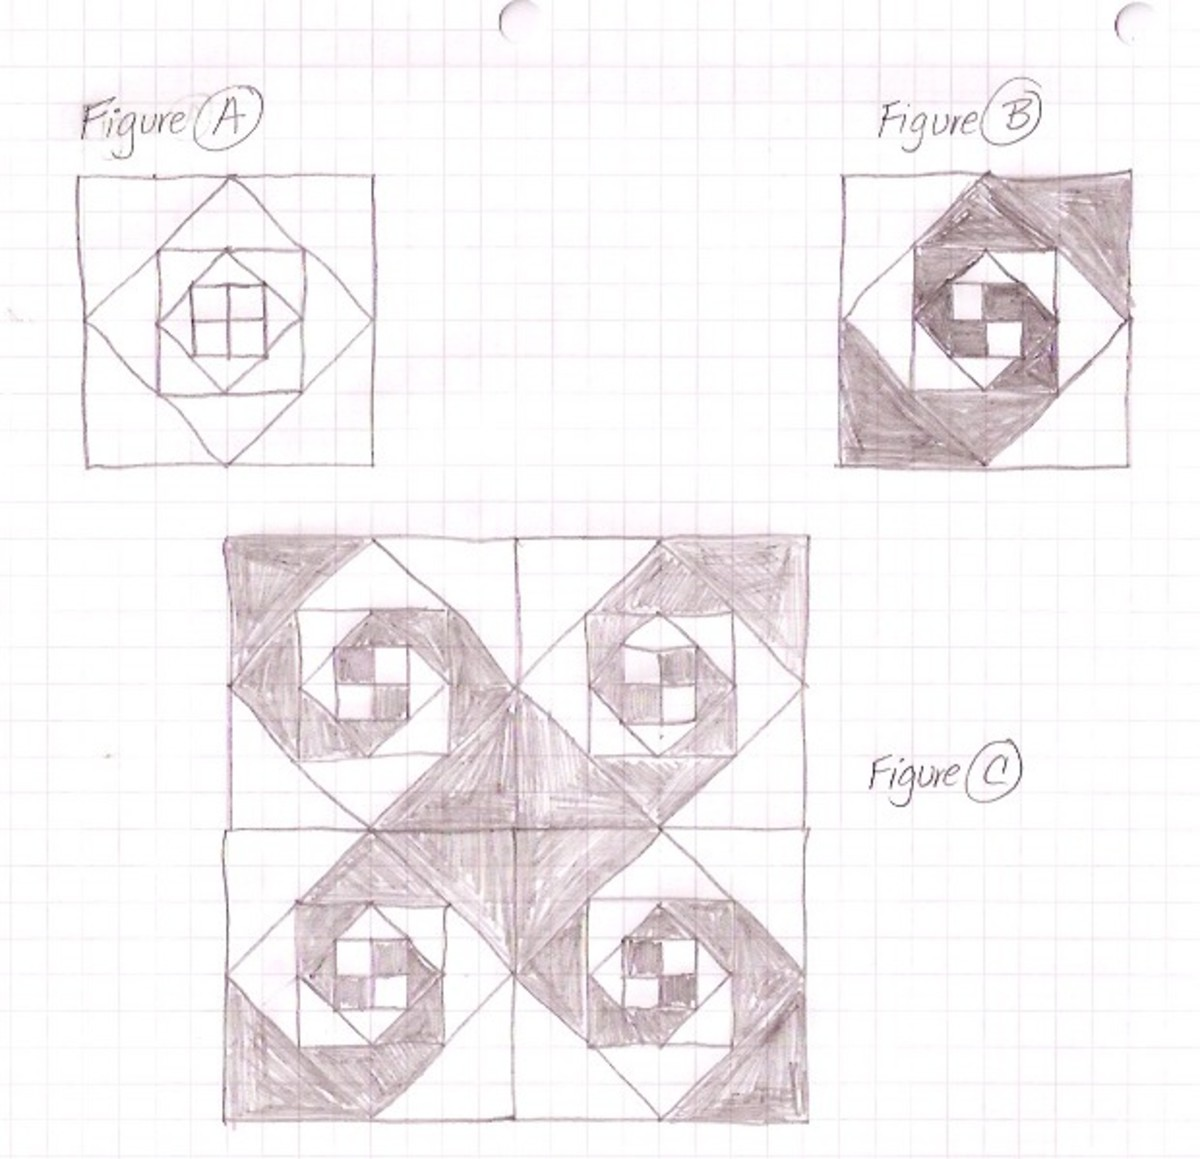 Sketches for the Snail's Trail tessellated design.